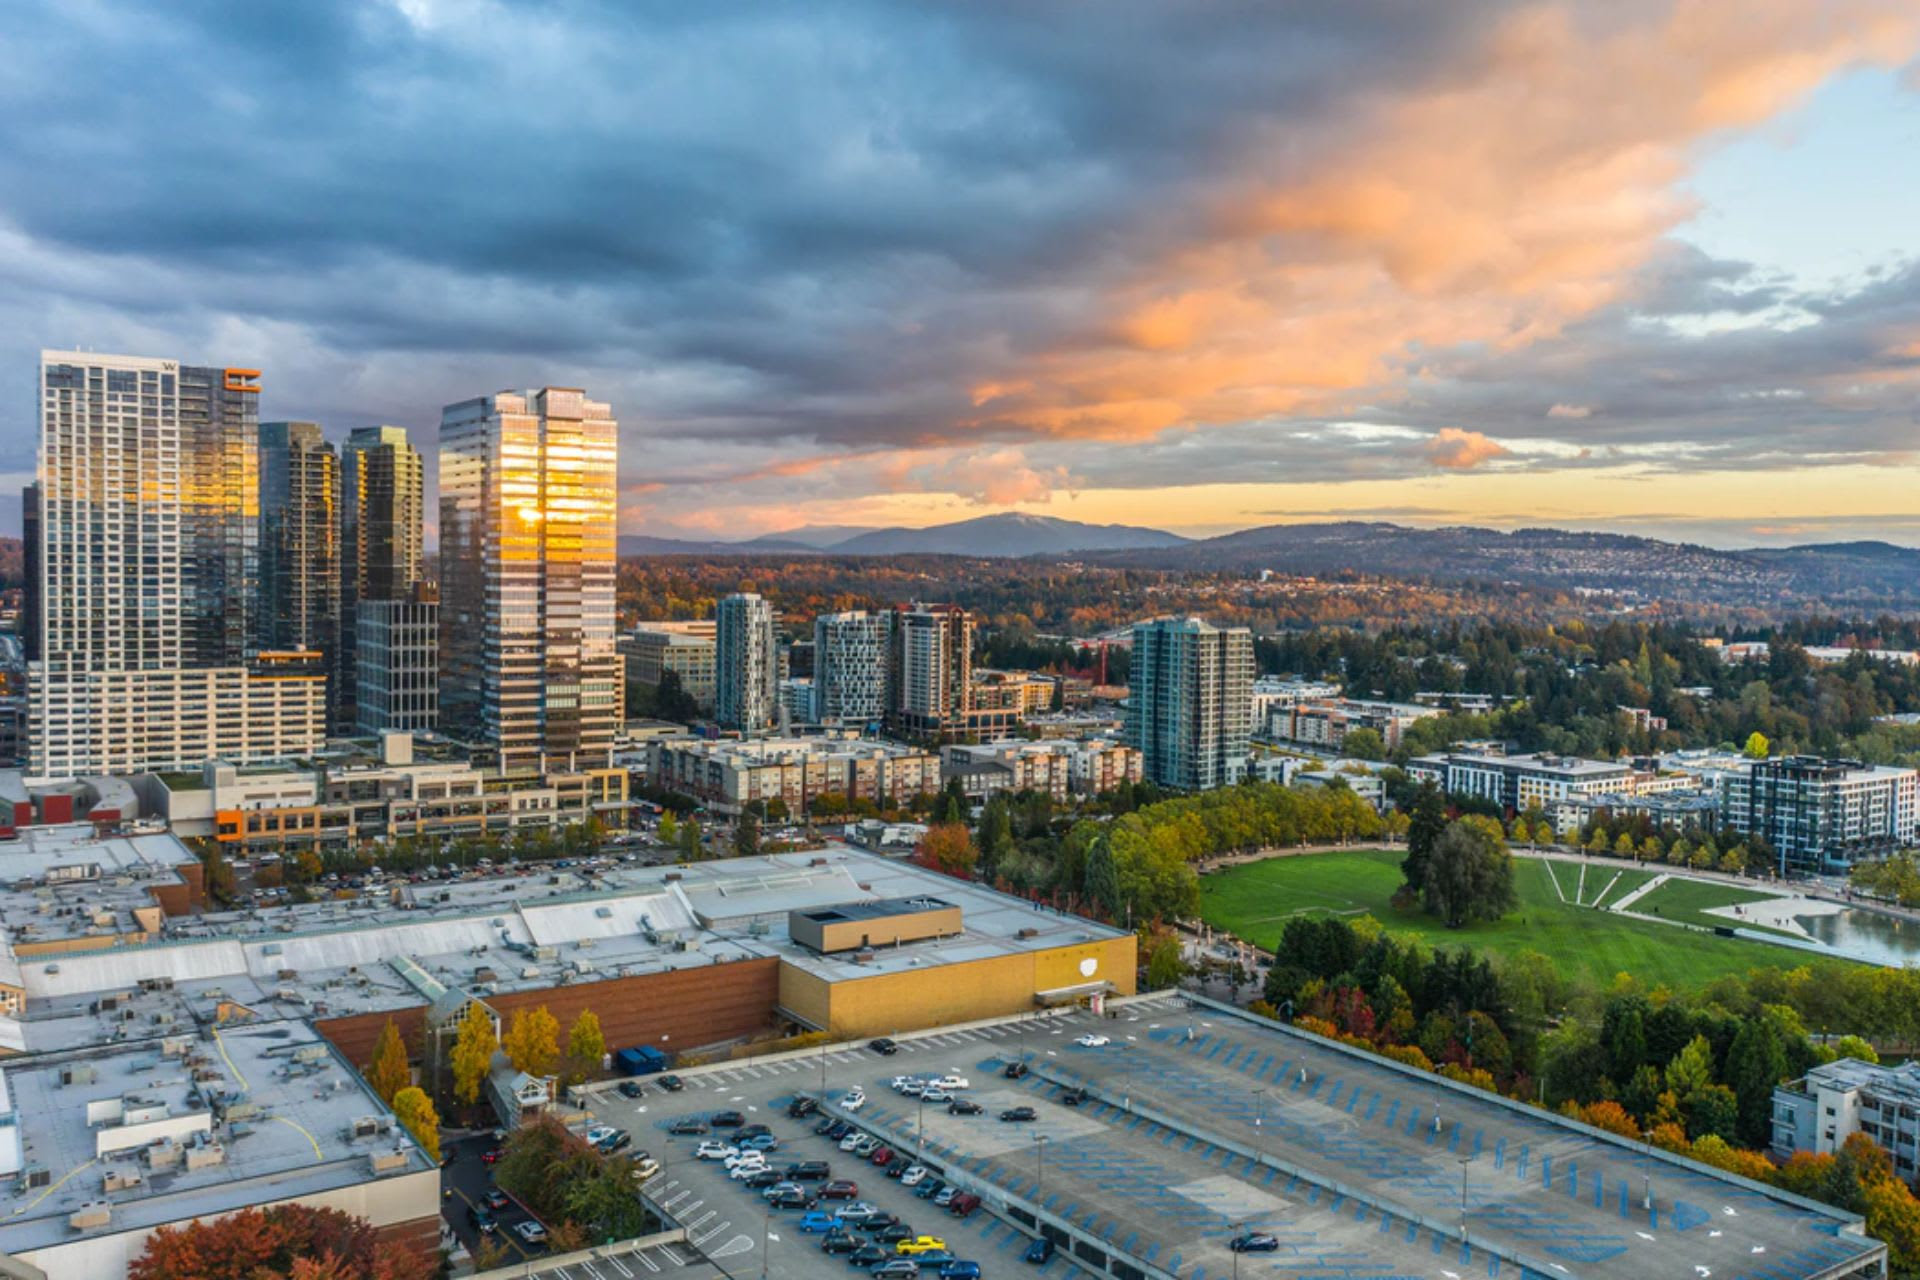 From Bellevue to Mercer Island: Which Washington Community is Right For You?